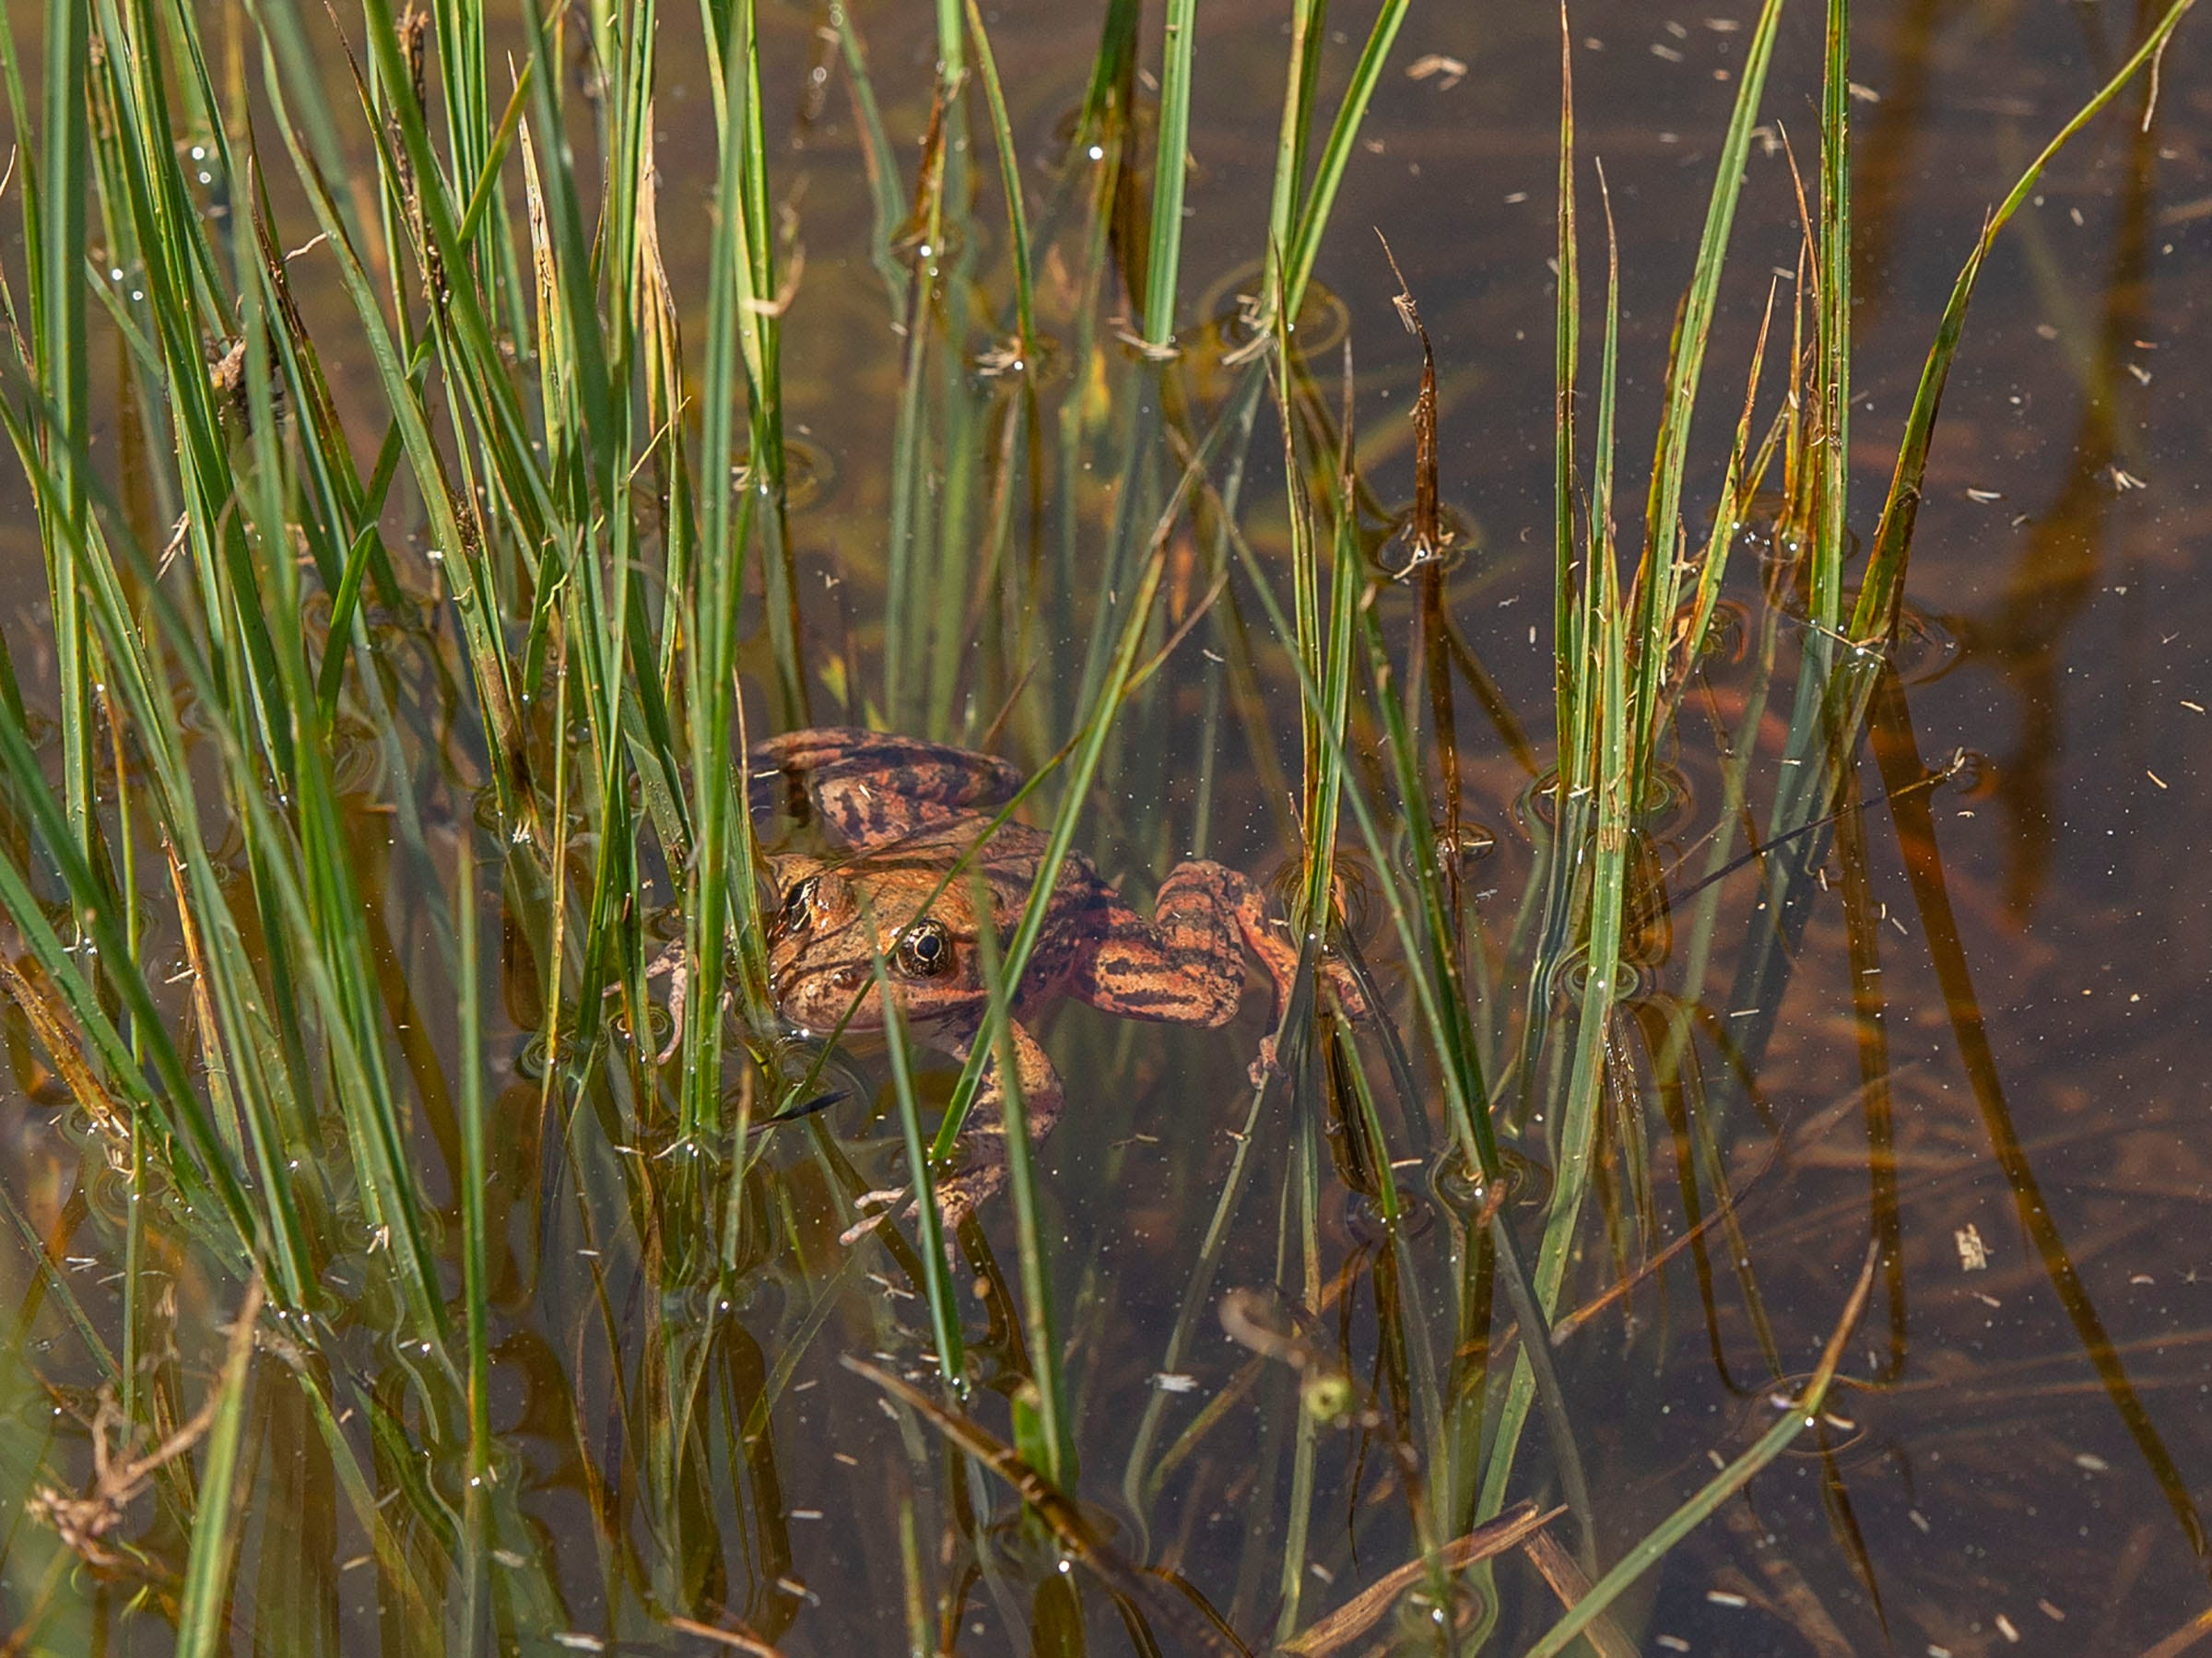 A red-legged frog released Friday at Yosemite National Park is shown in this photo provided by the National Park Service.